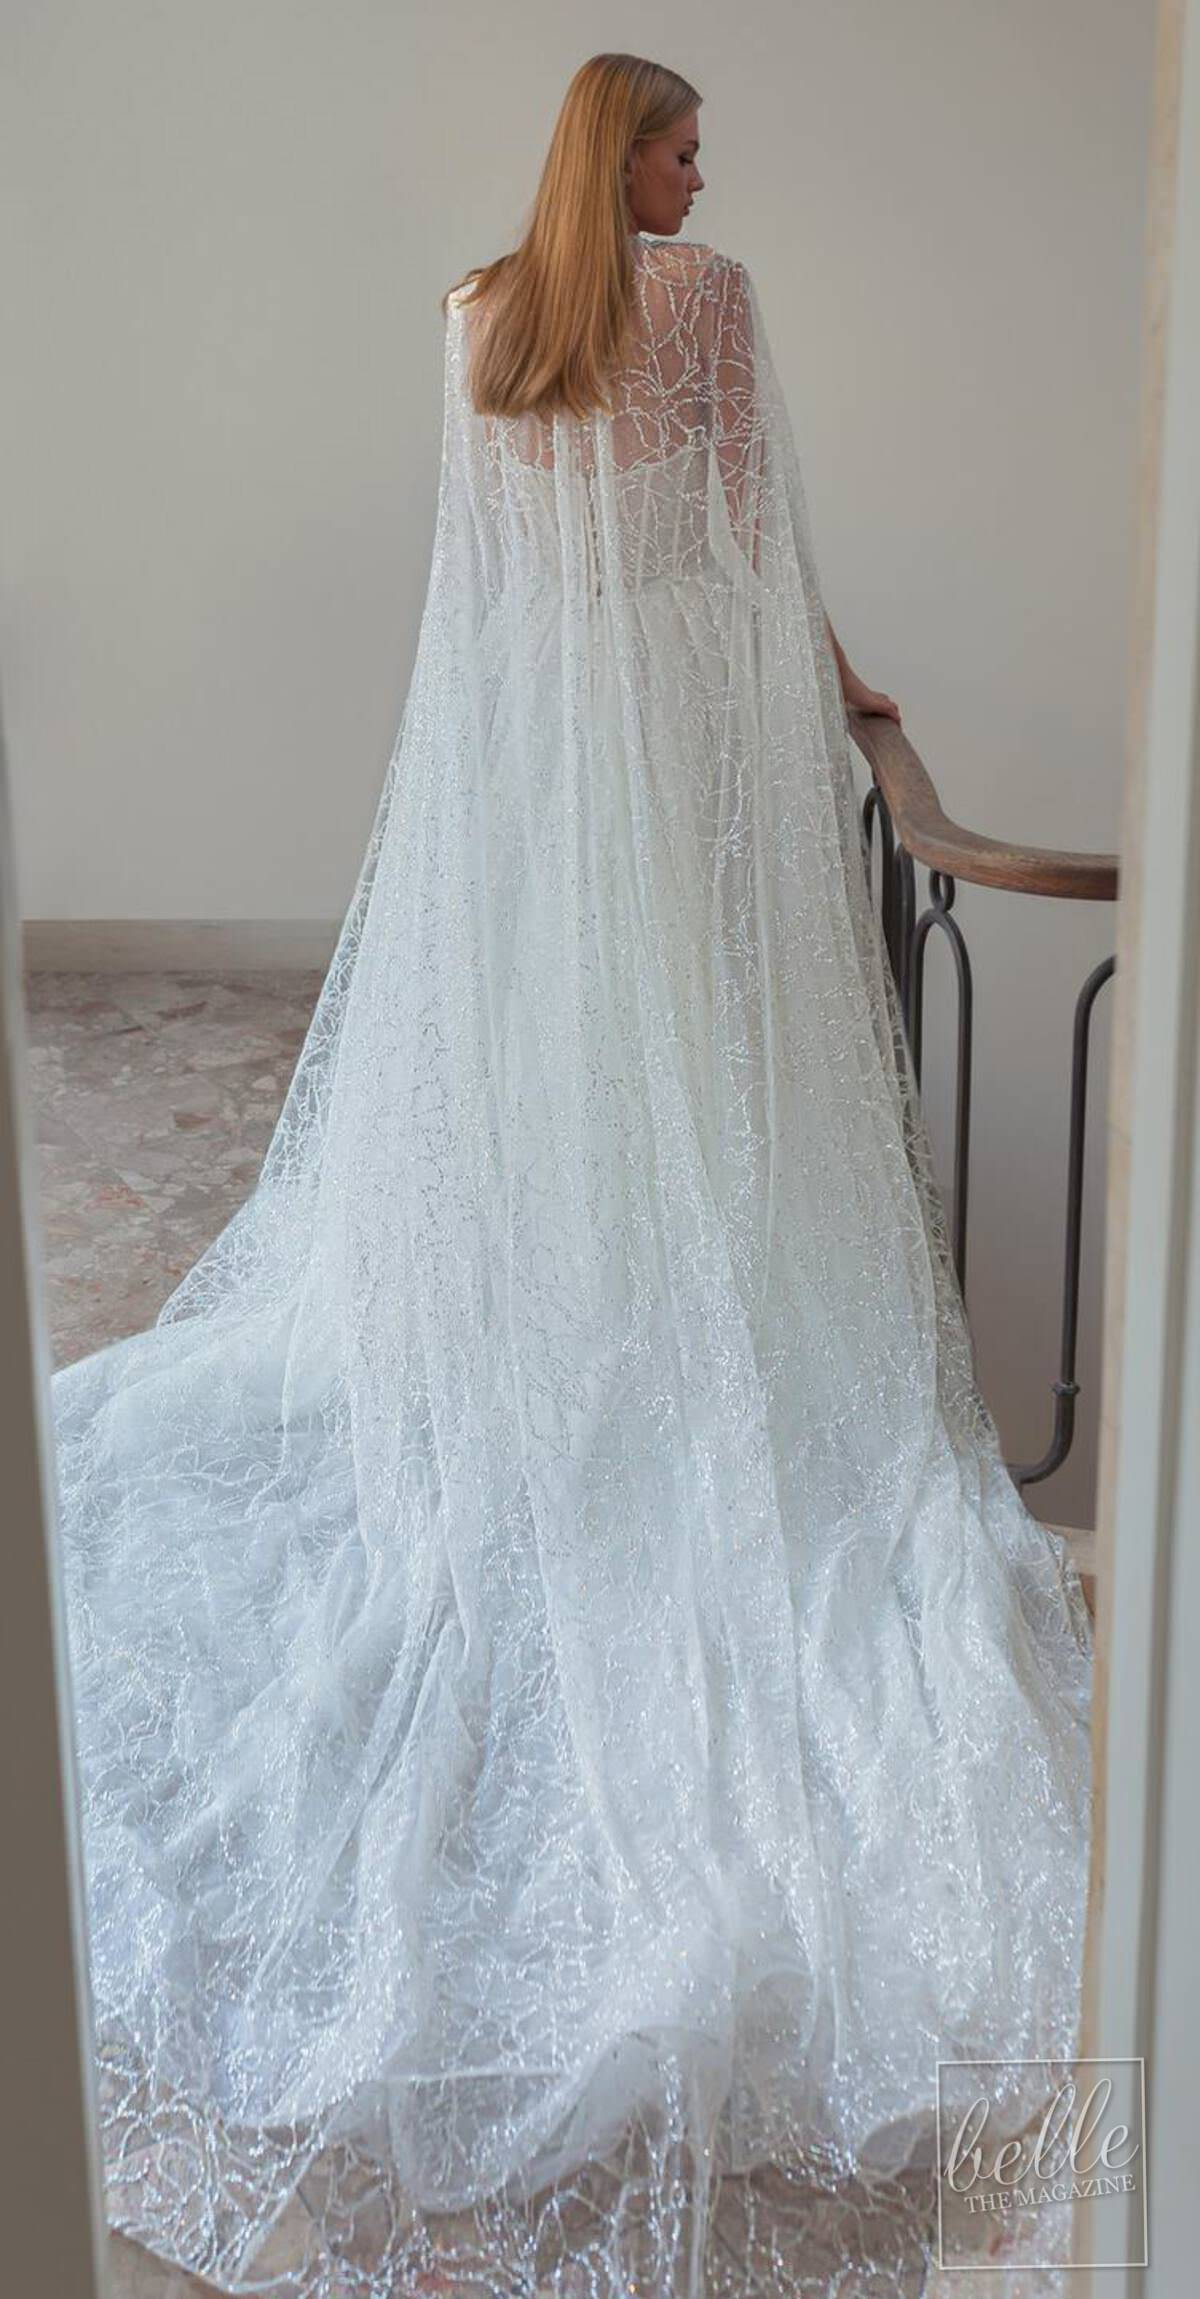 Wedding dress trends 2021 - Capes- MIMOSA BY JULIE VINO 2021